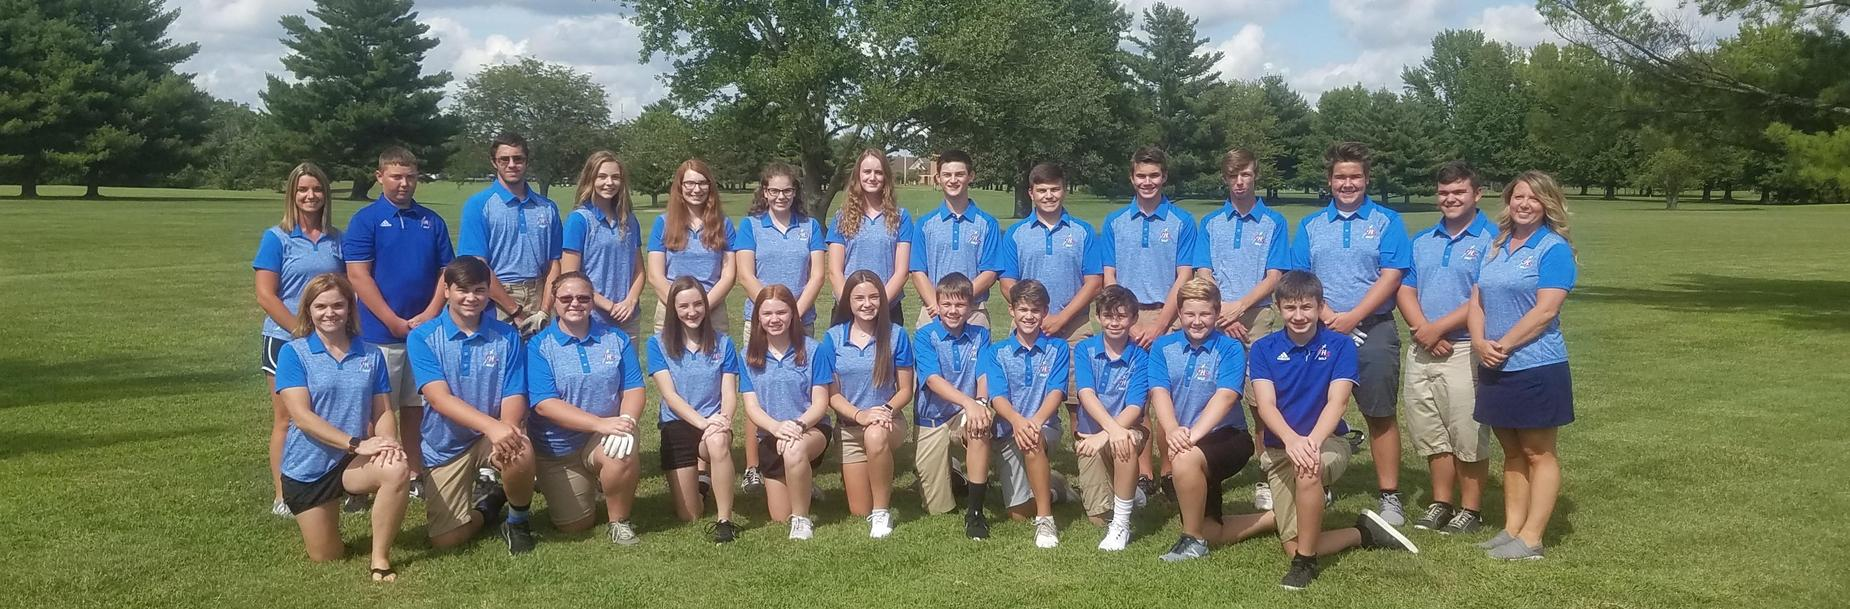 2019-2020 Carlinville High School Golf Team